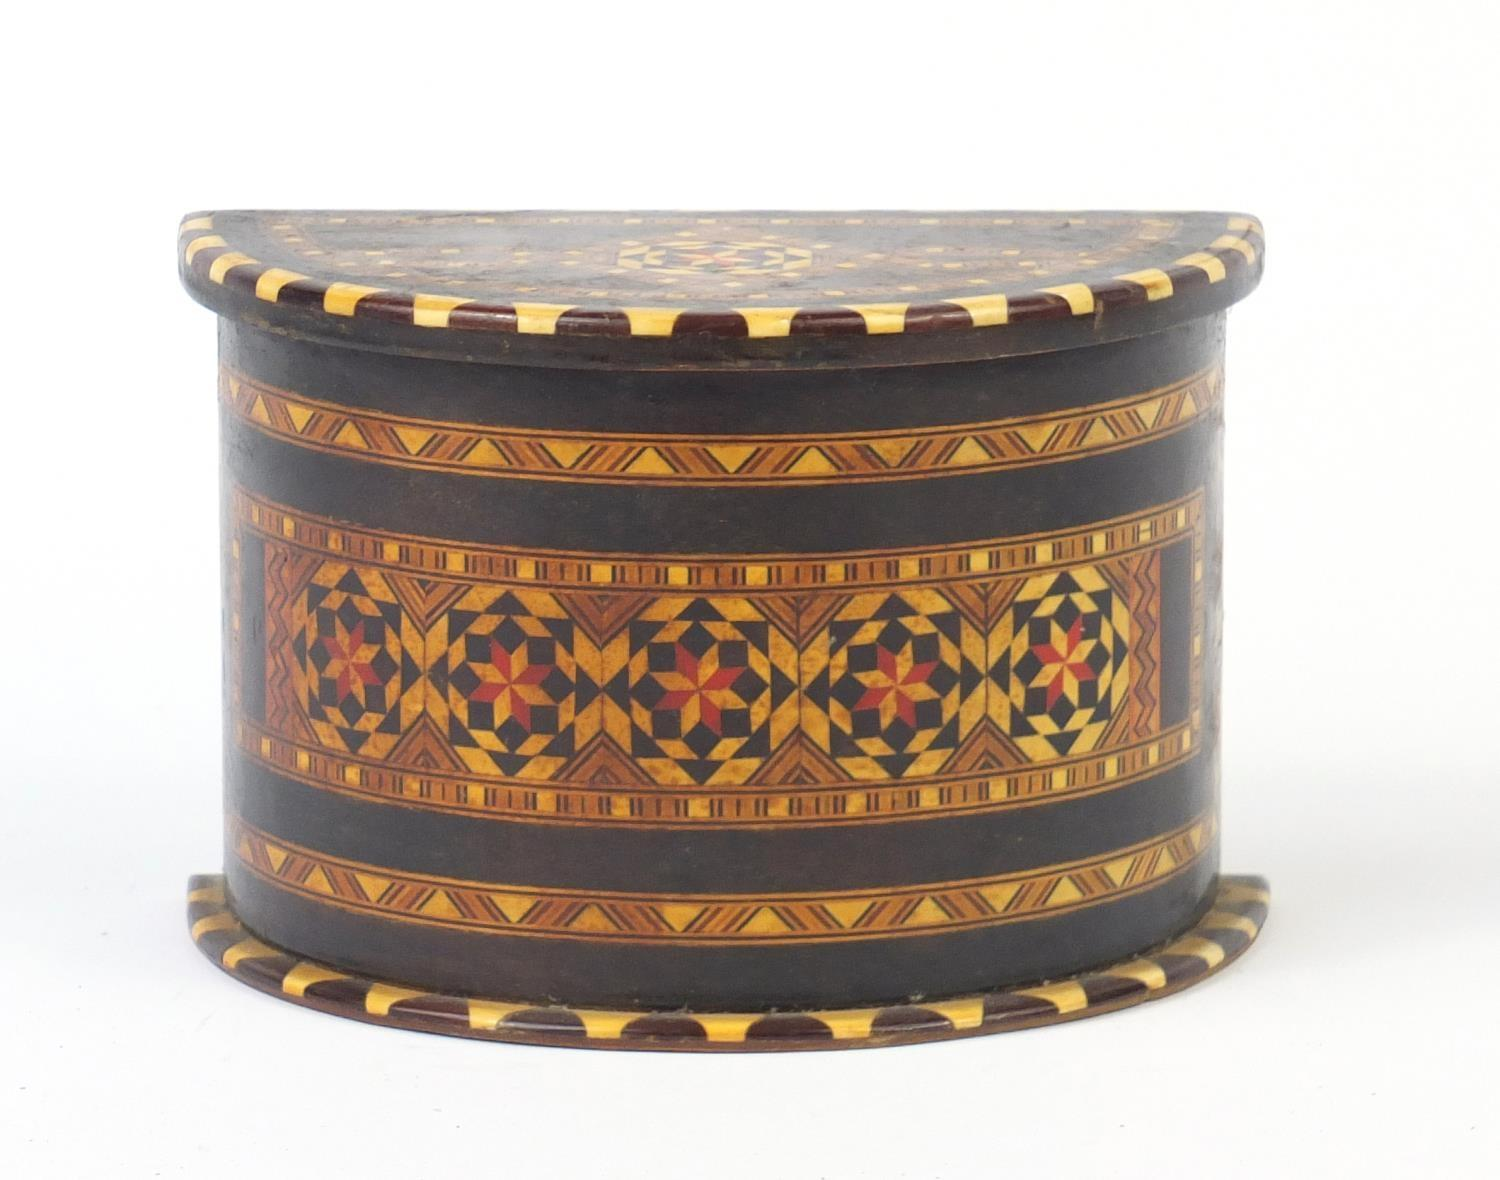 Lot 201 - Vizagapatam style playing card box, 12cm H x 18cm W x 10cm D : For Further Condition Reports